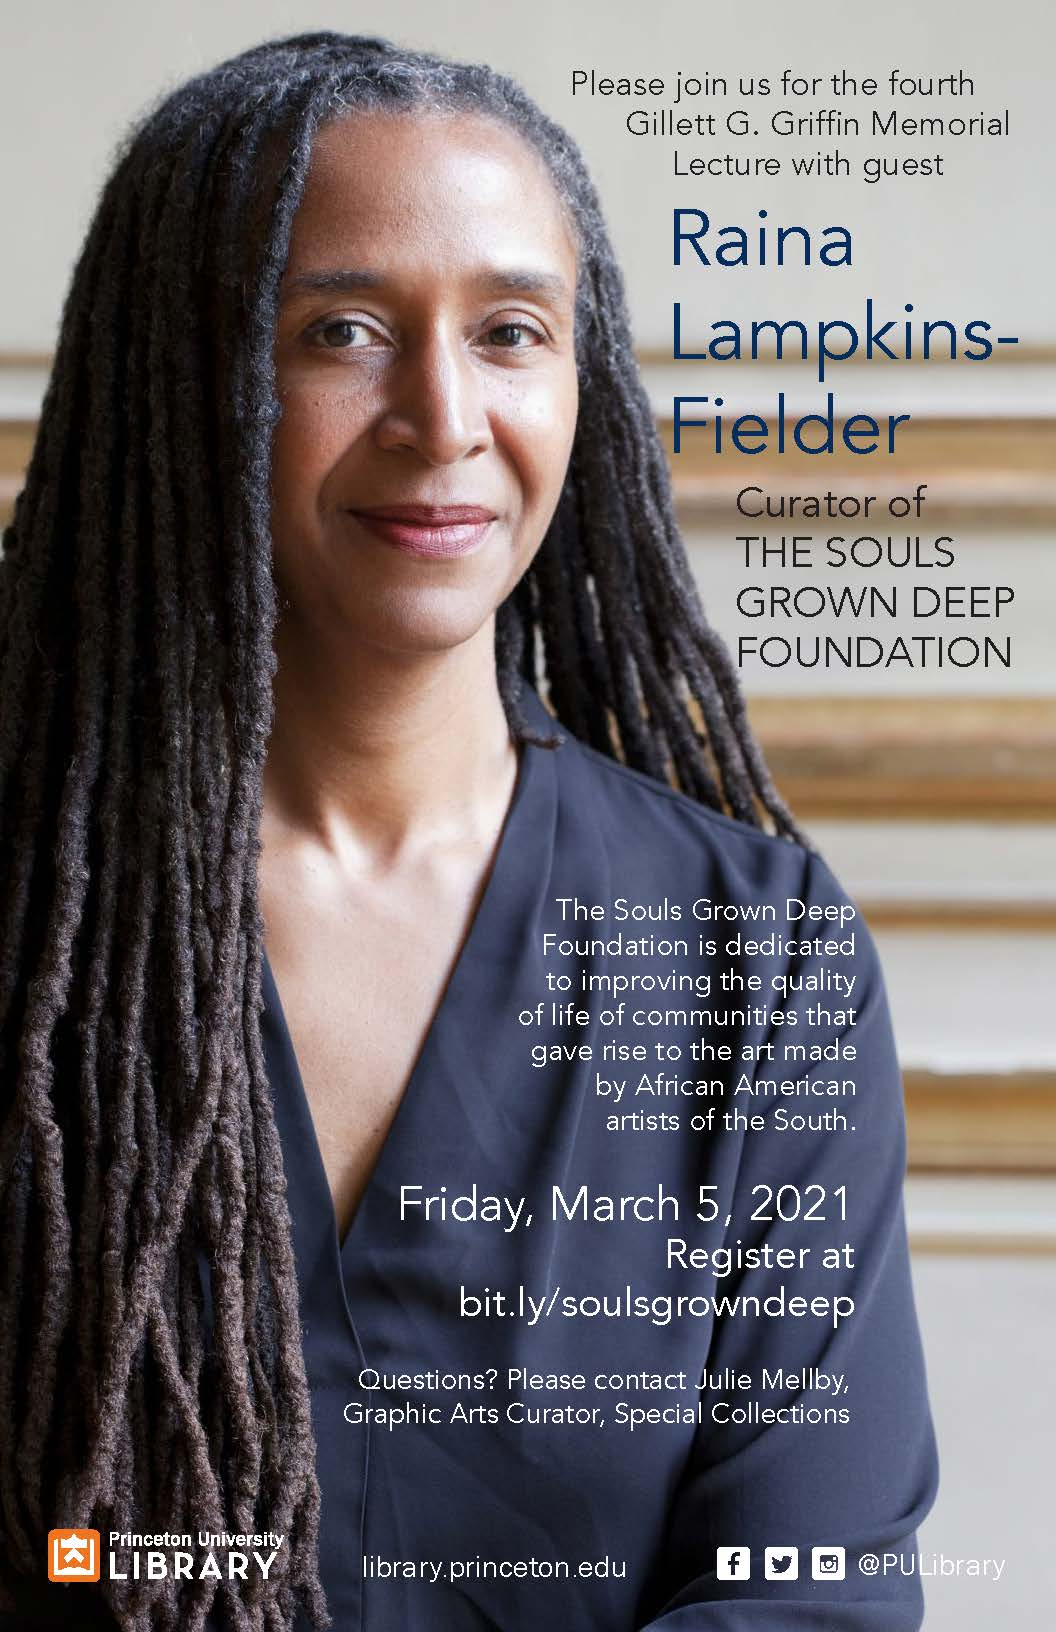 Poster of Raina Lampkins-Fielder, curator of The Souls Grown Deep Foundation